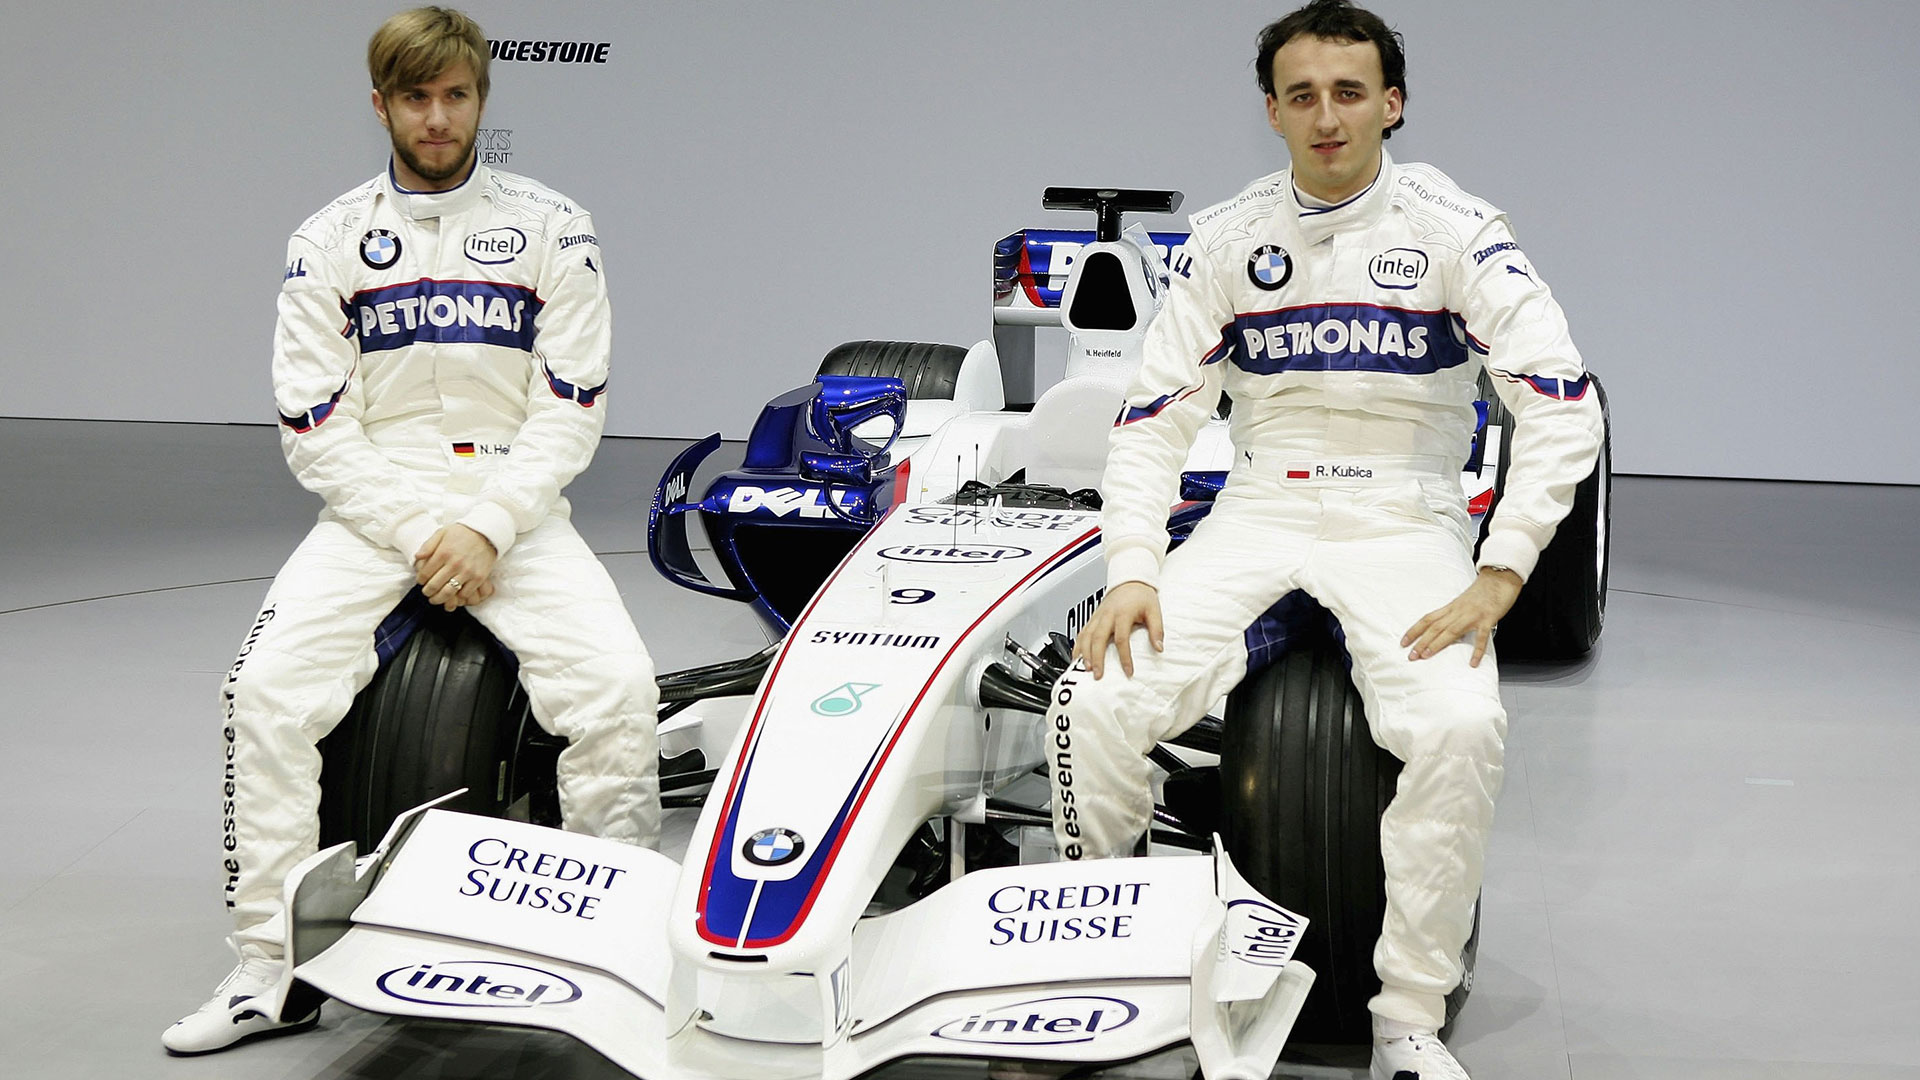 Robert Kubica Didn T Help Himself With Comments To Press At Bmw Sauber Says Nick Heidfeld Formula 1